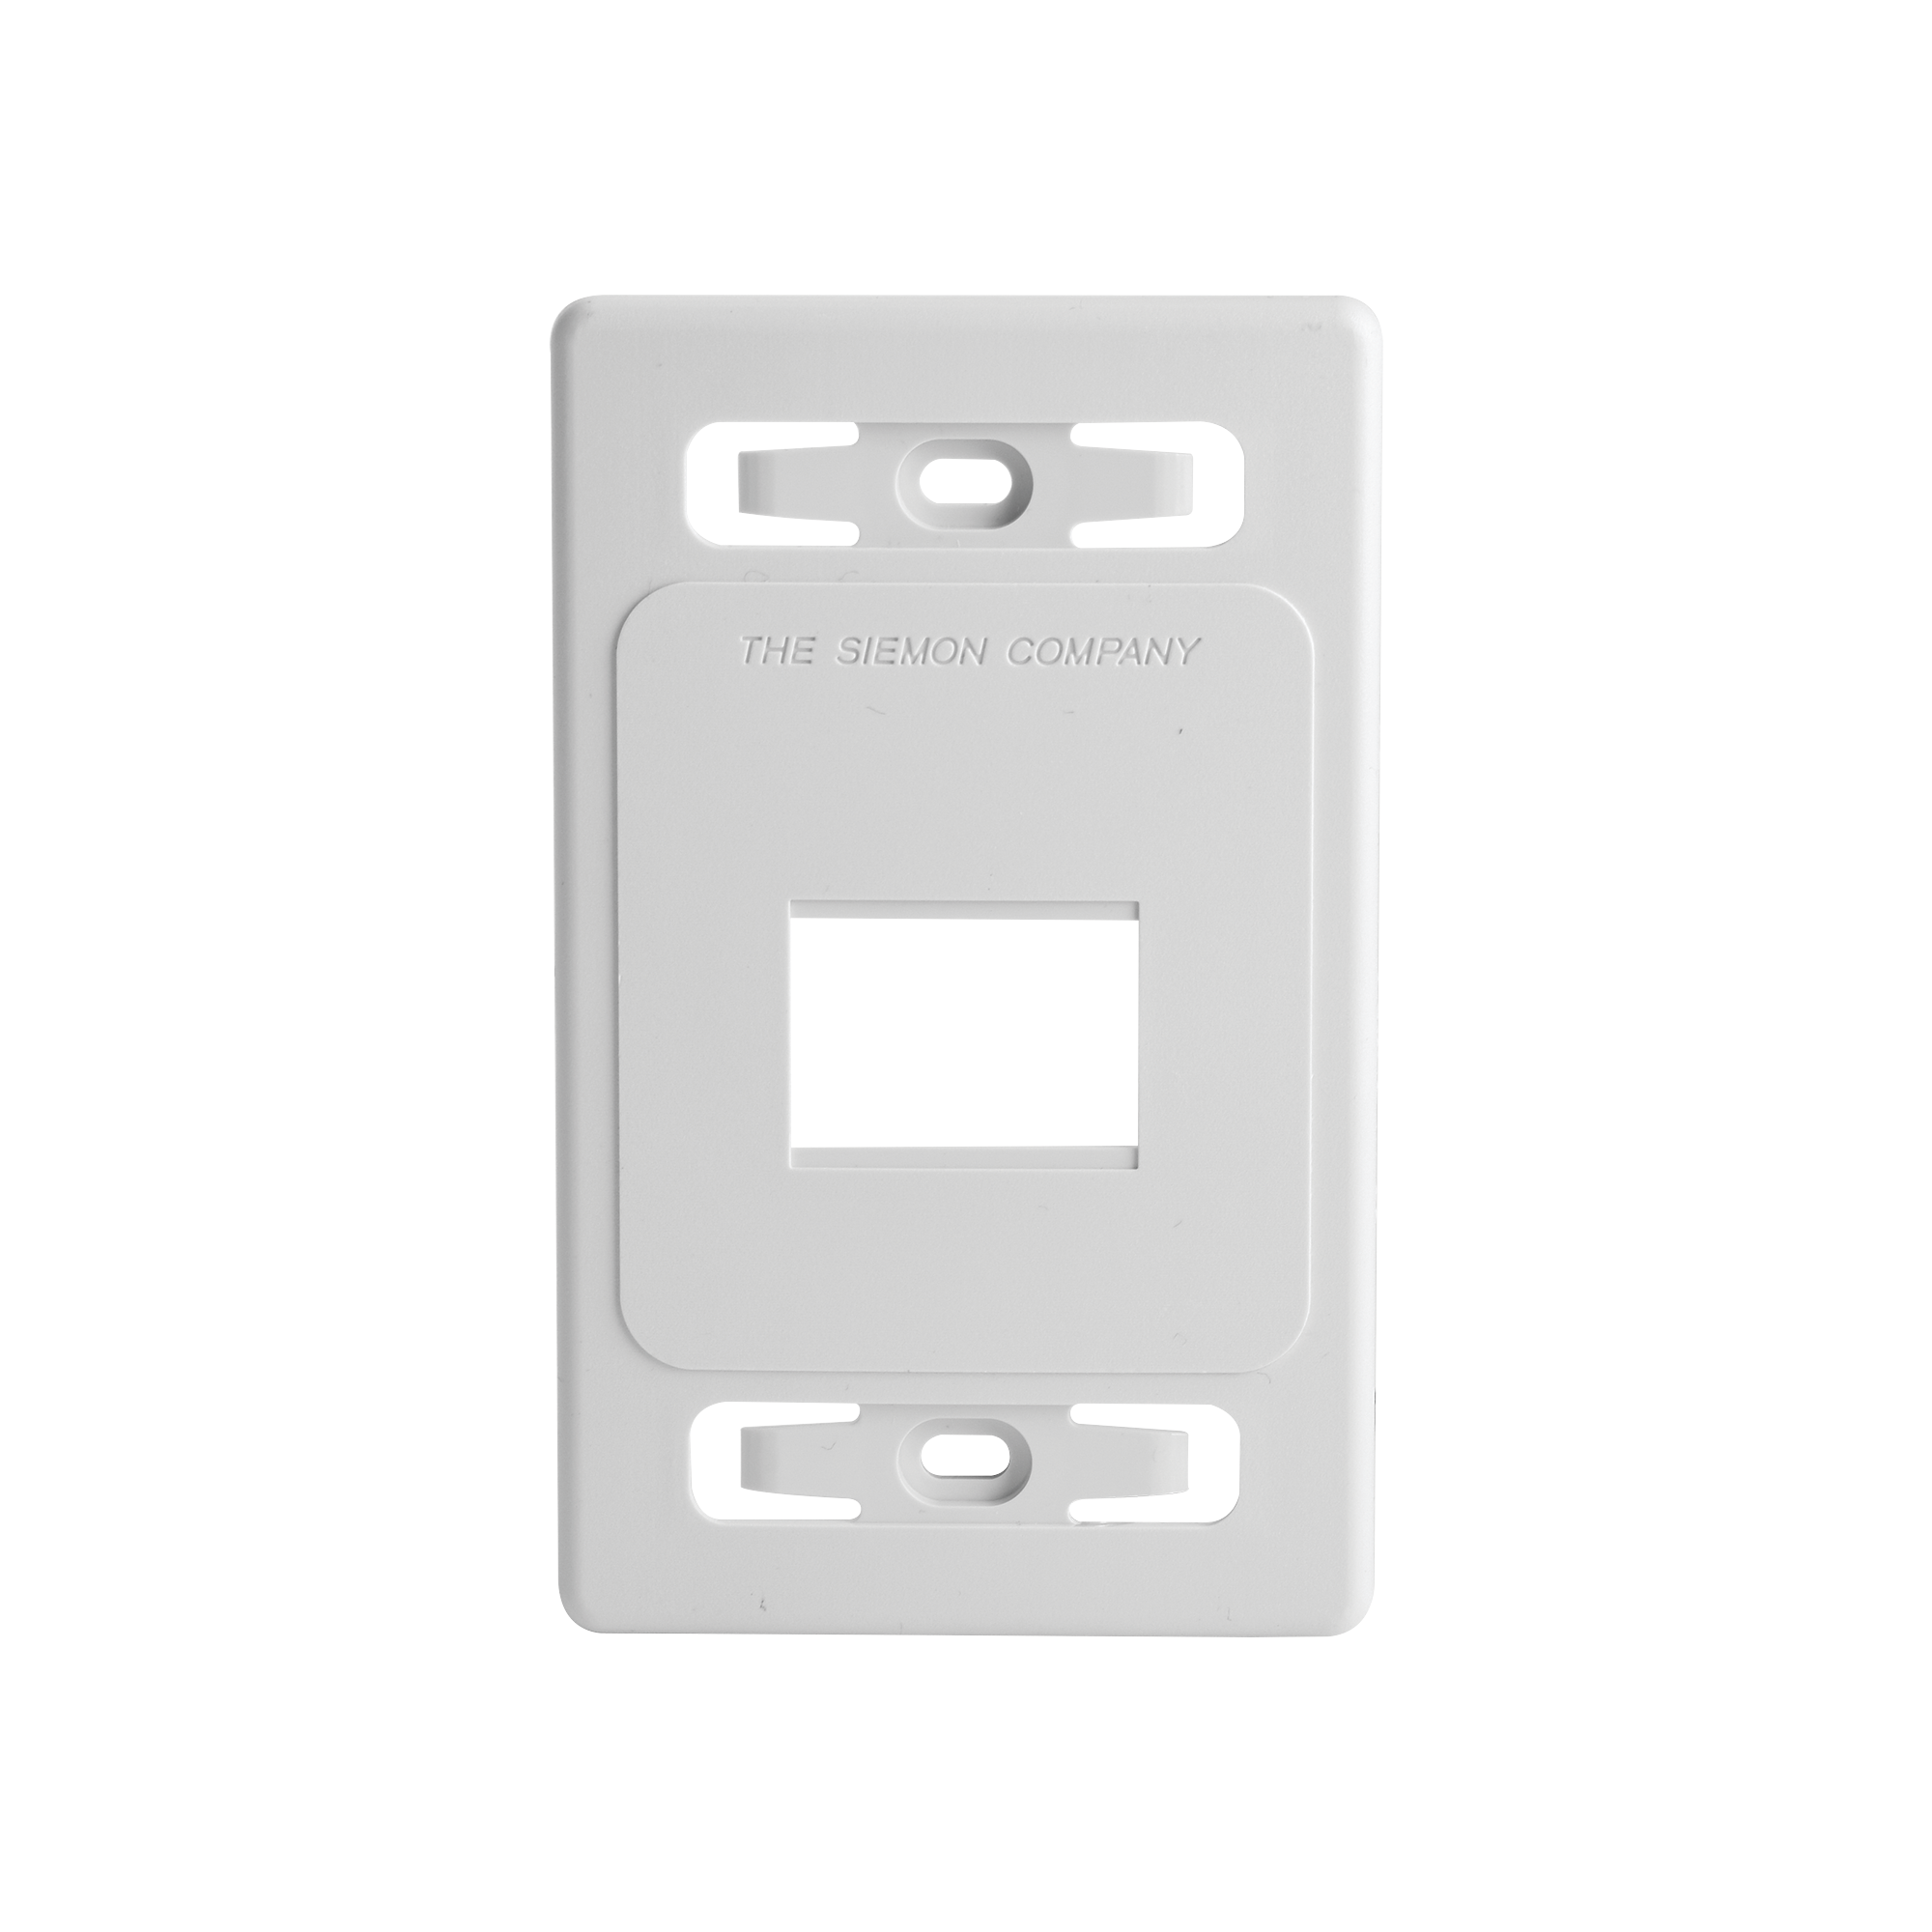 Placa de pared modular MAX, de 2 salidas, color blanco